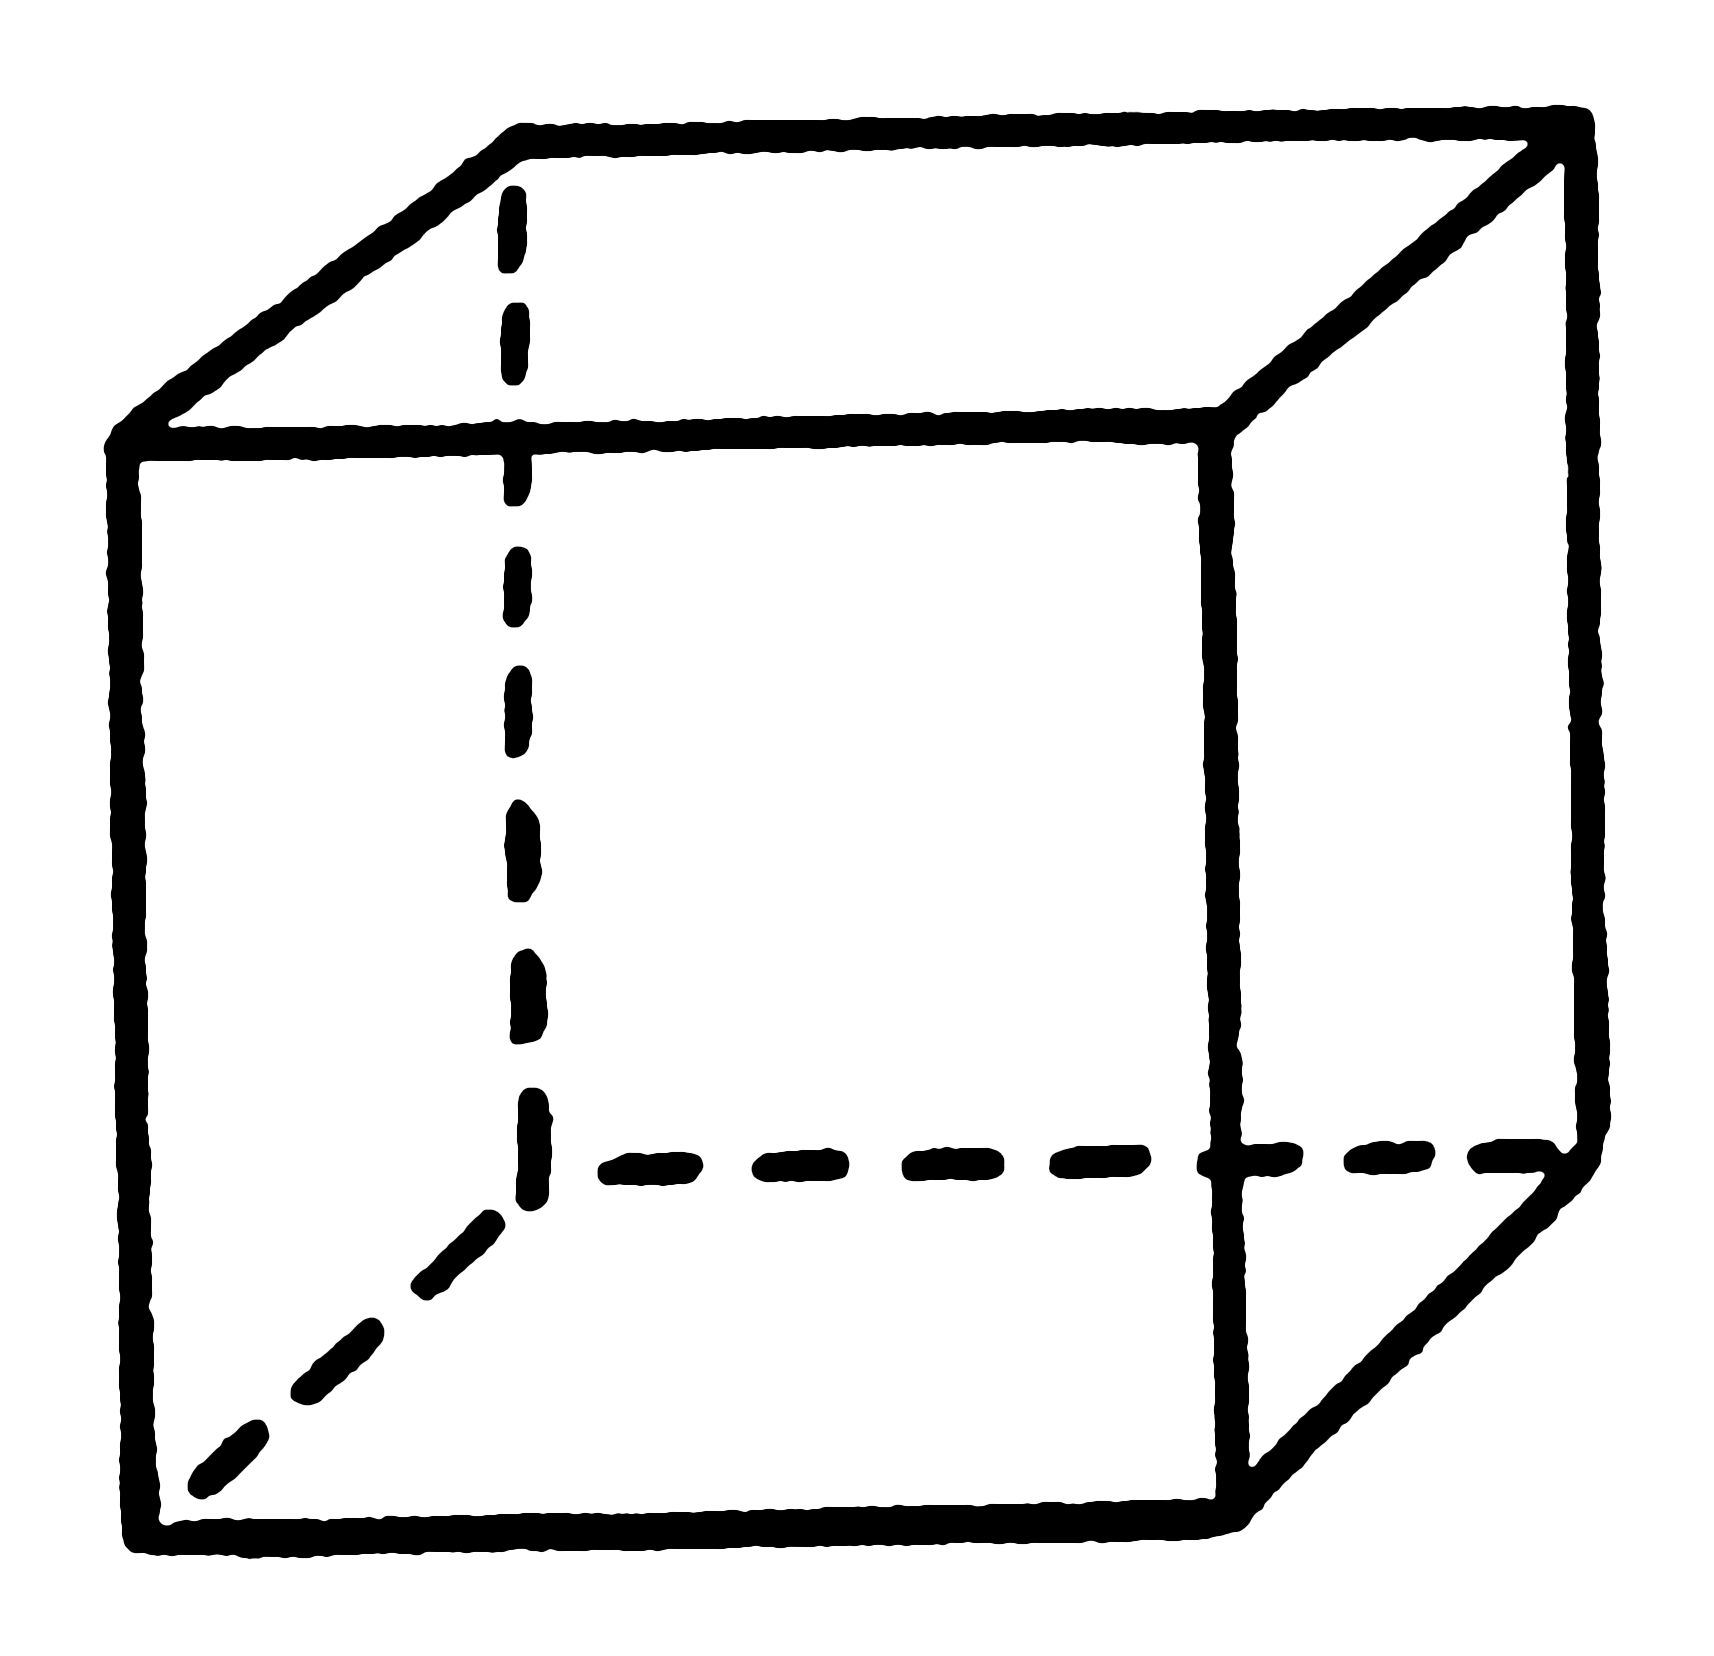 Images of Cube | 1714x1656